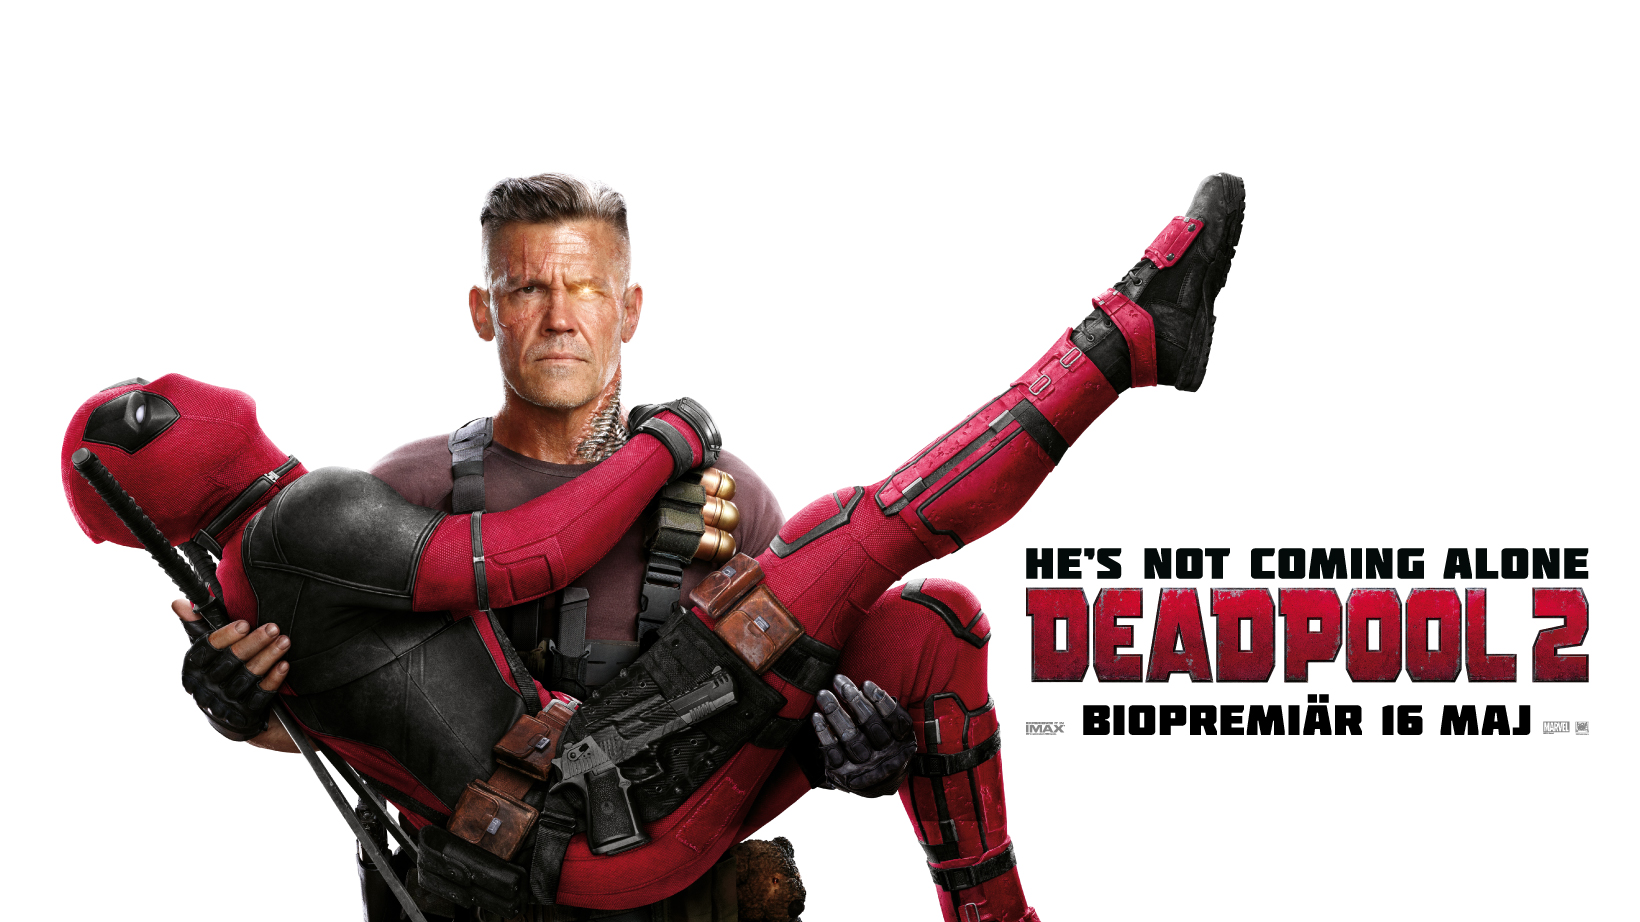 deadpool2_fb_coverphoto_retina